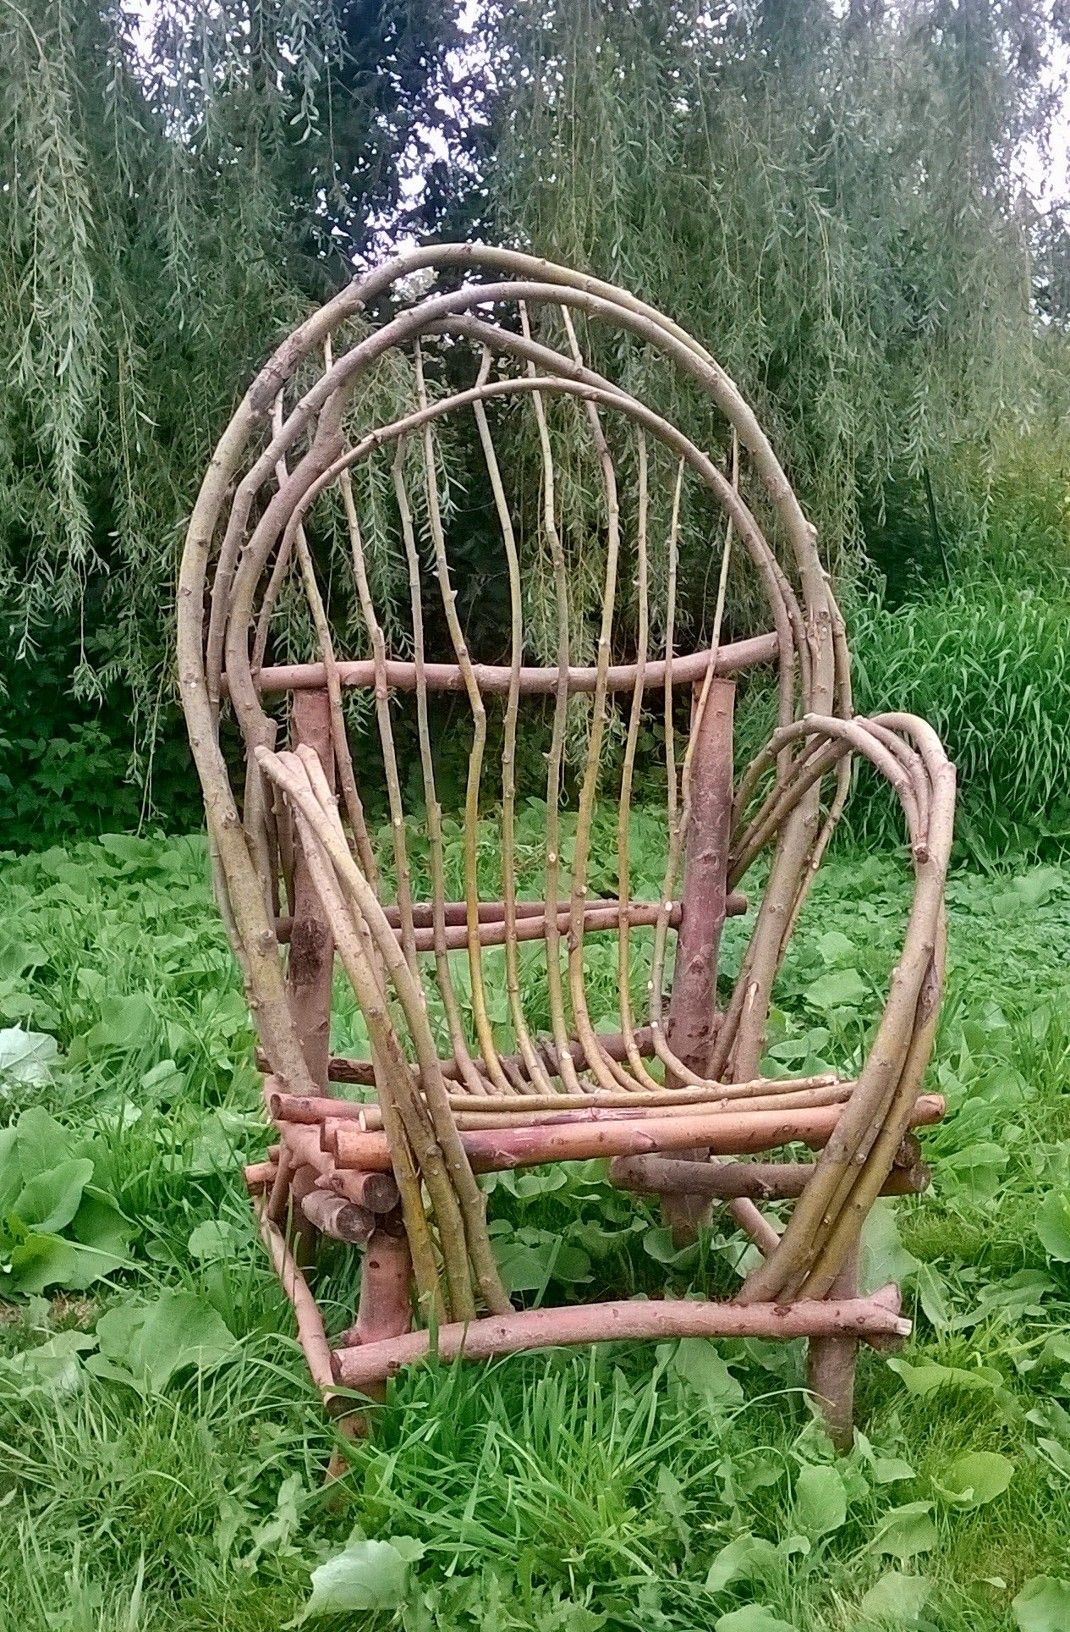 Adult Willow Chair, Bent In Place While Green.